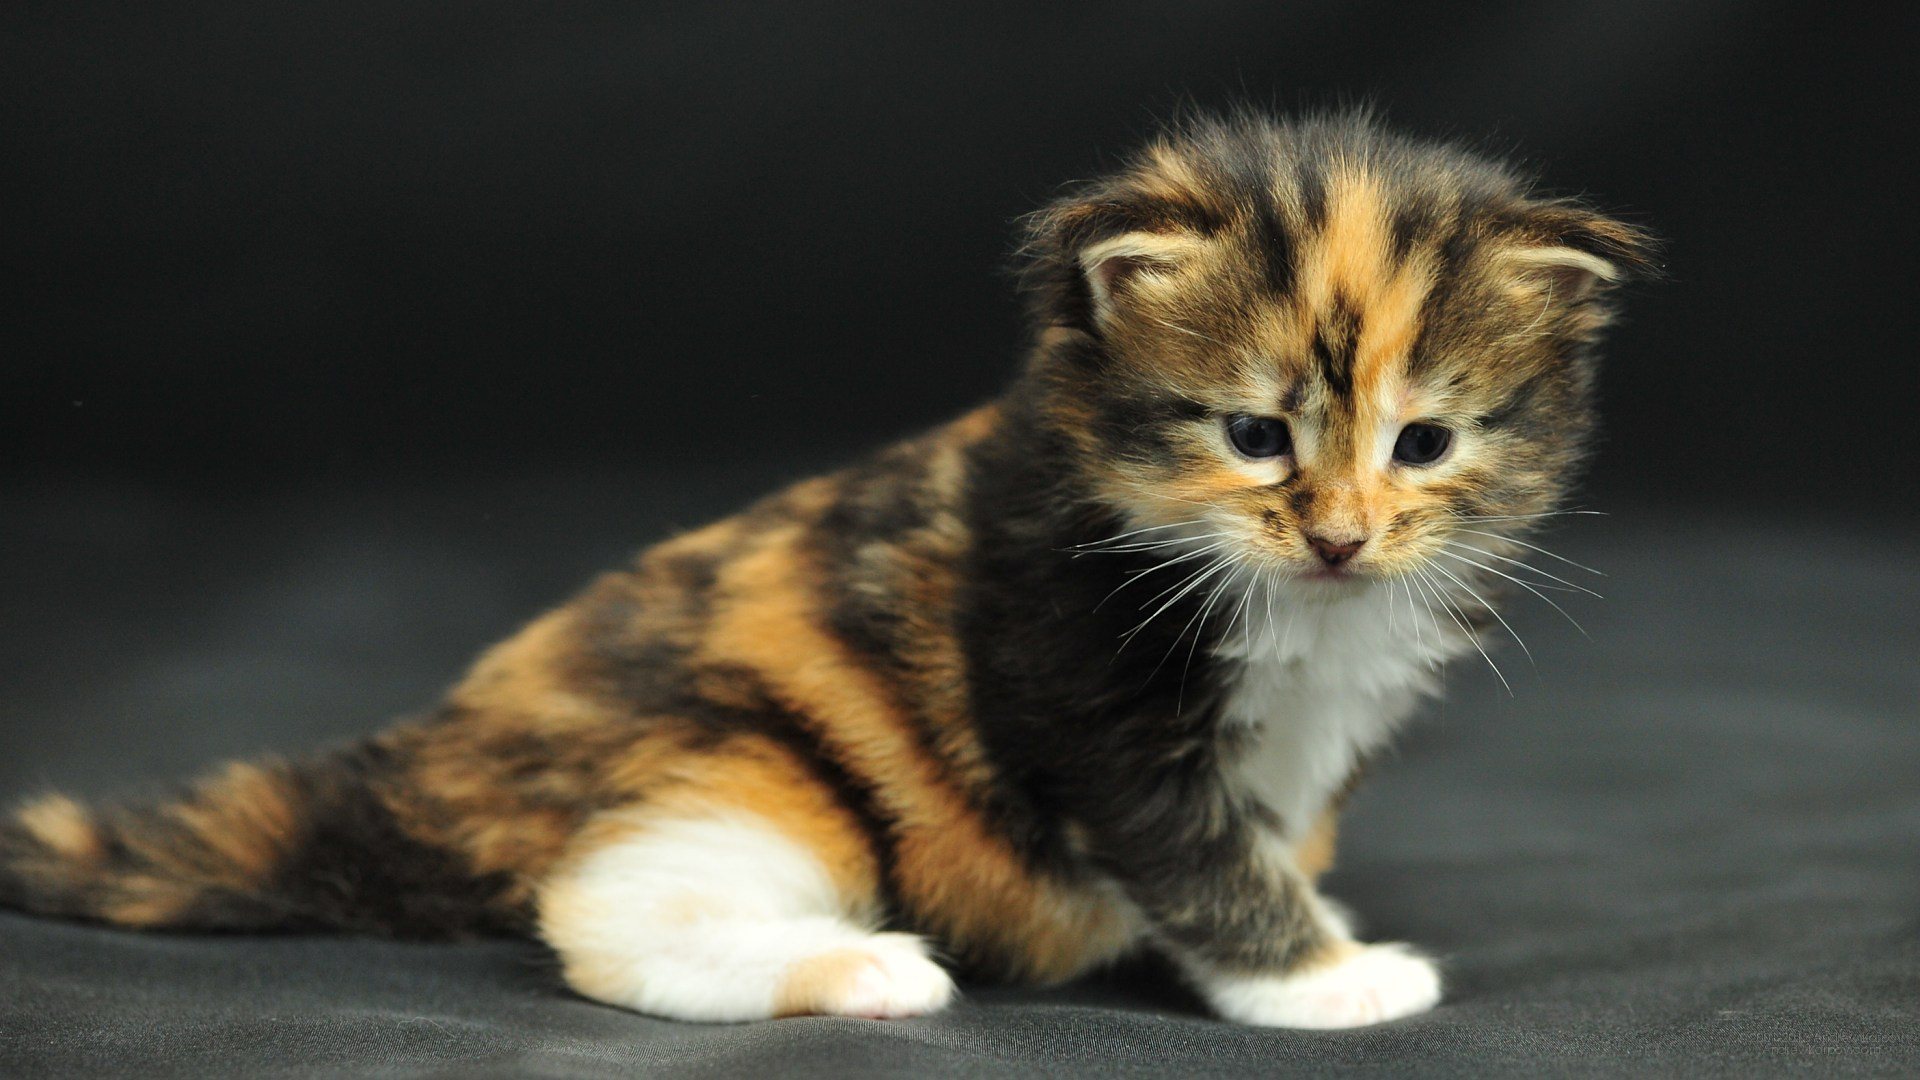 image wallpaper 1920 1080 Funny Cat Origami Maine Coon kitten LOL cats 1920x1080